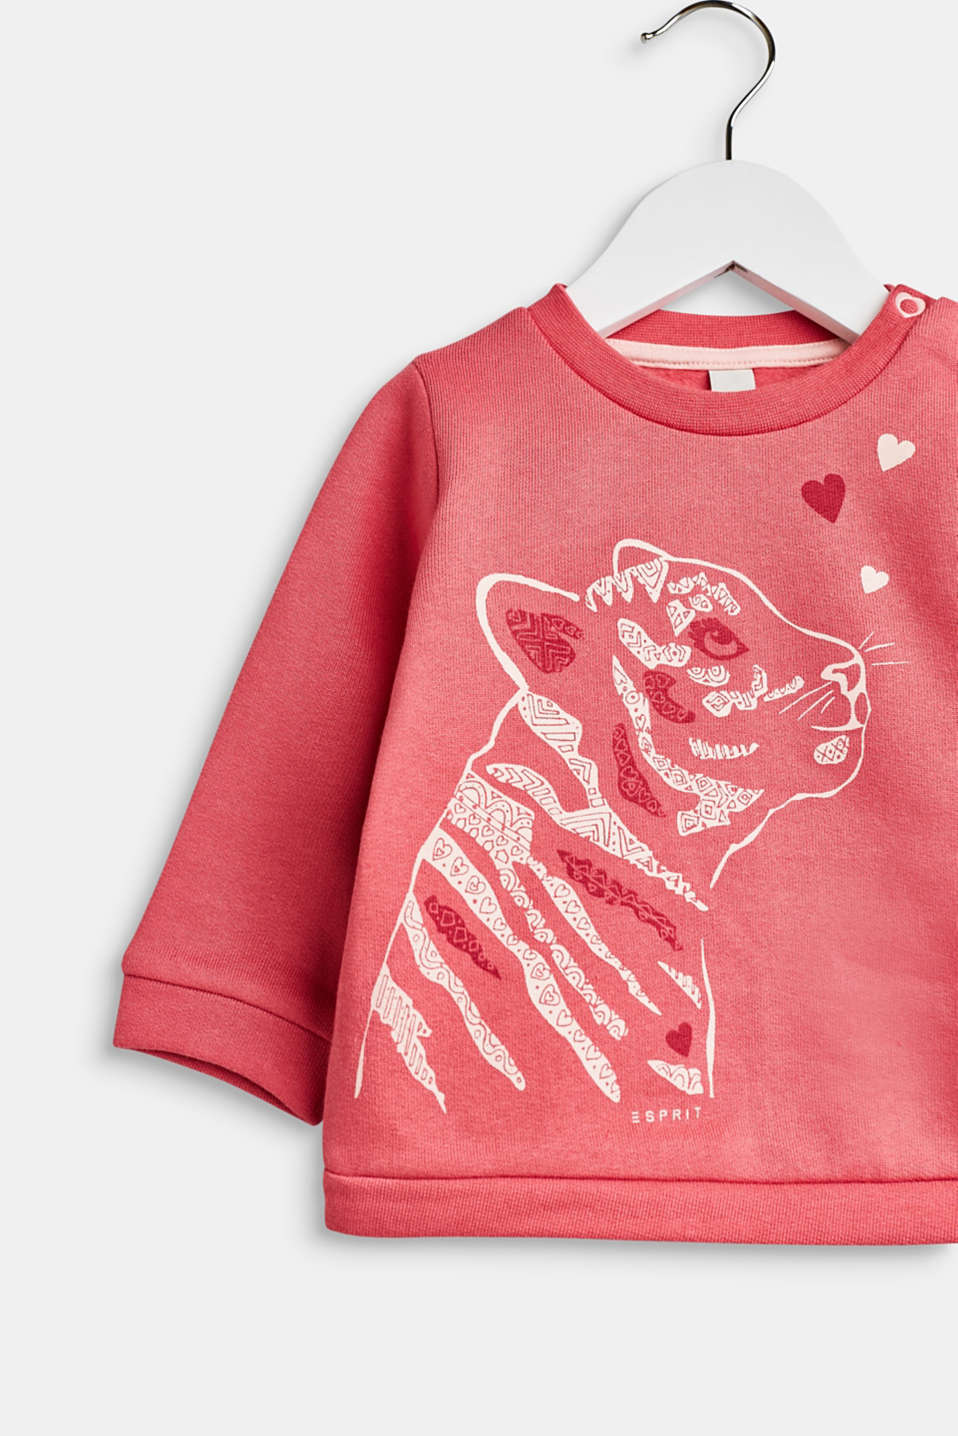 Sweatshirt with a print, 100% cotton, LCTINTED ROSE, detail image number 2